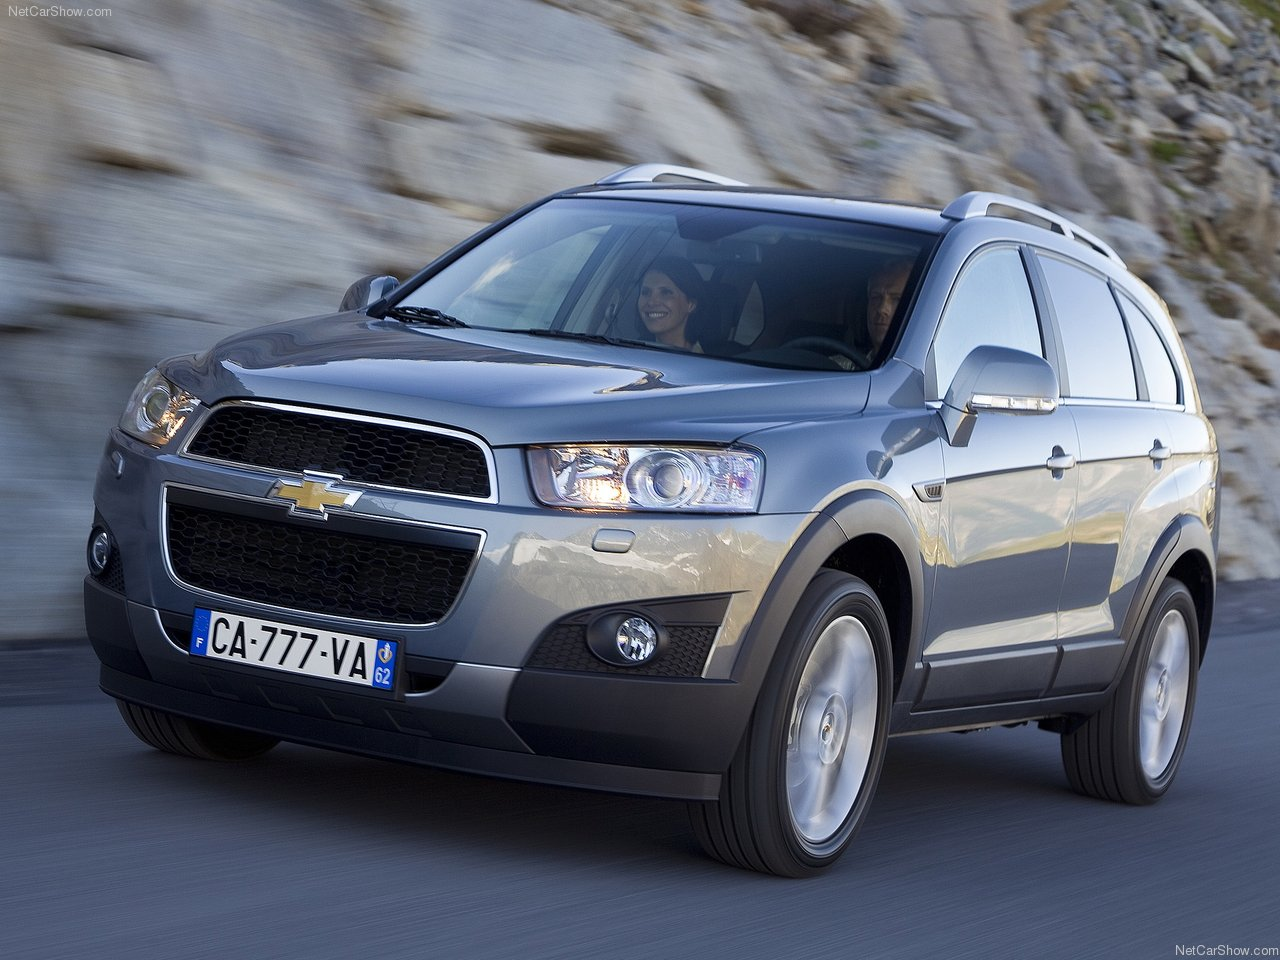 2012 chevrolet captiva chevrolet autos spain. Black Bedroom Furniture Sets. Home Design Ideas